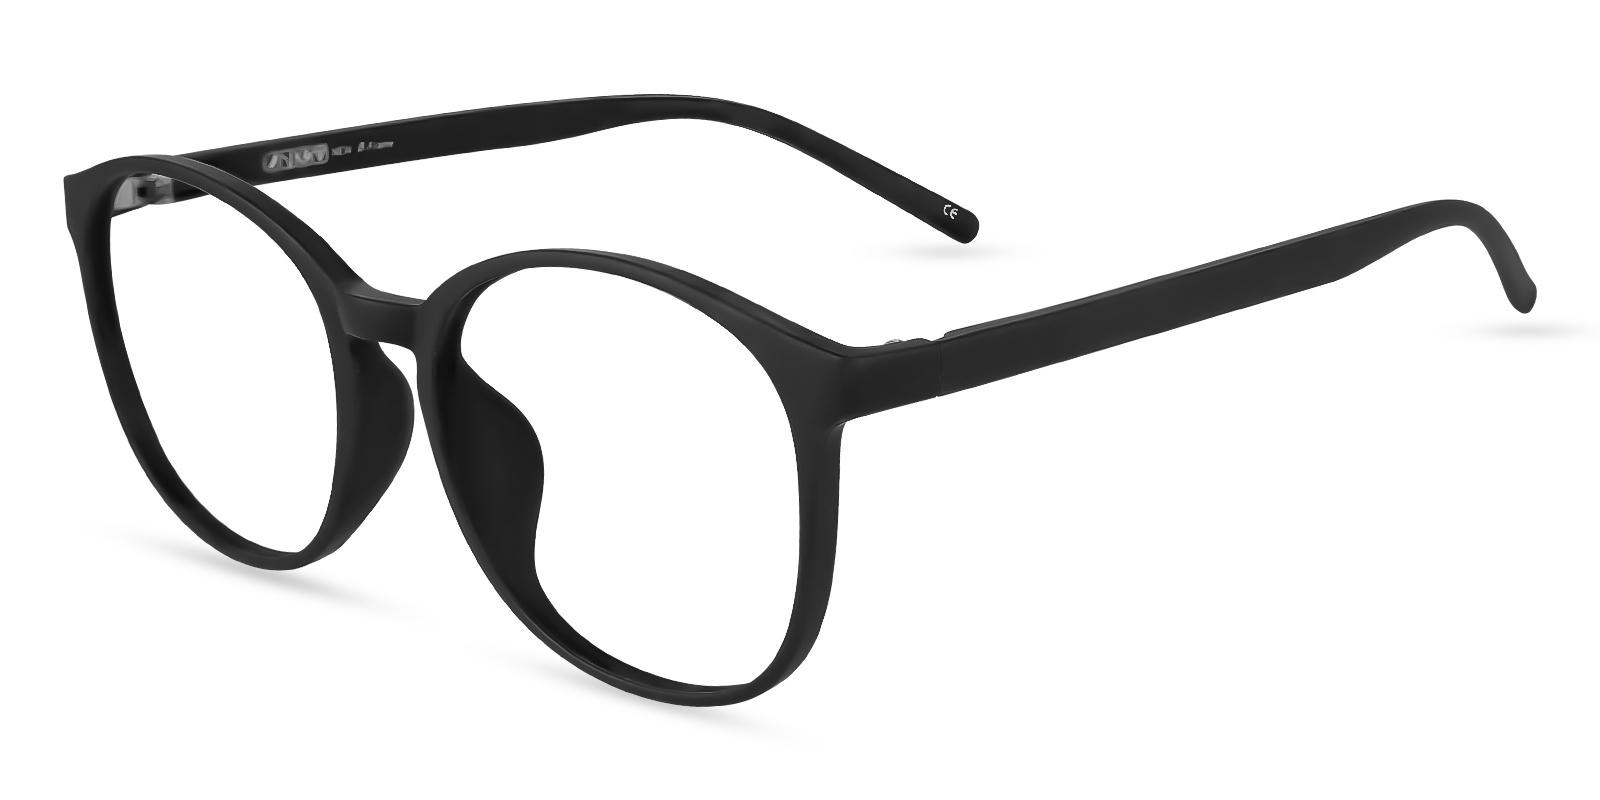 Dallas Black TR Eyeglasses , Lightweight , UniversalBridgeFit Frames from ABBE Glasses